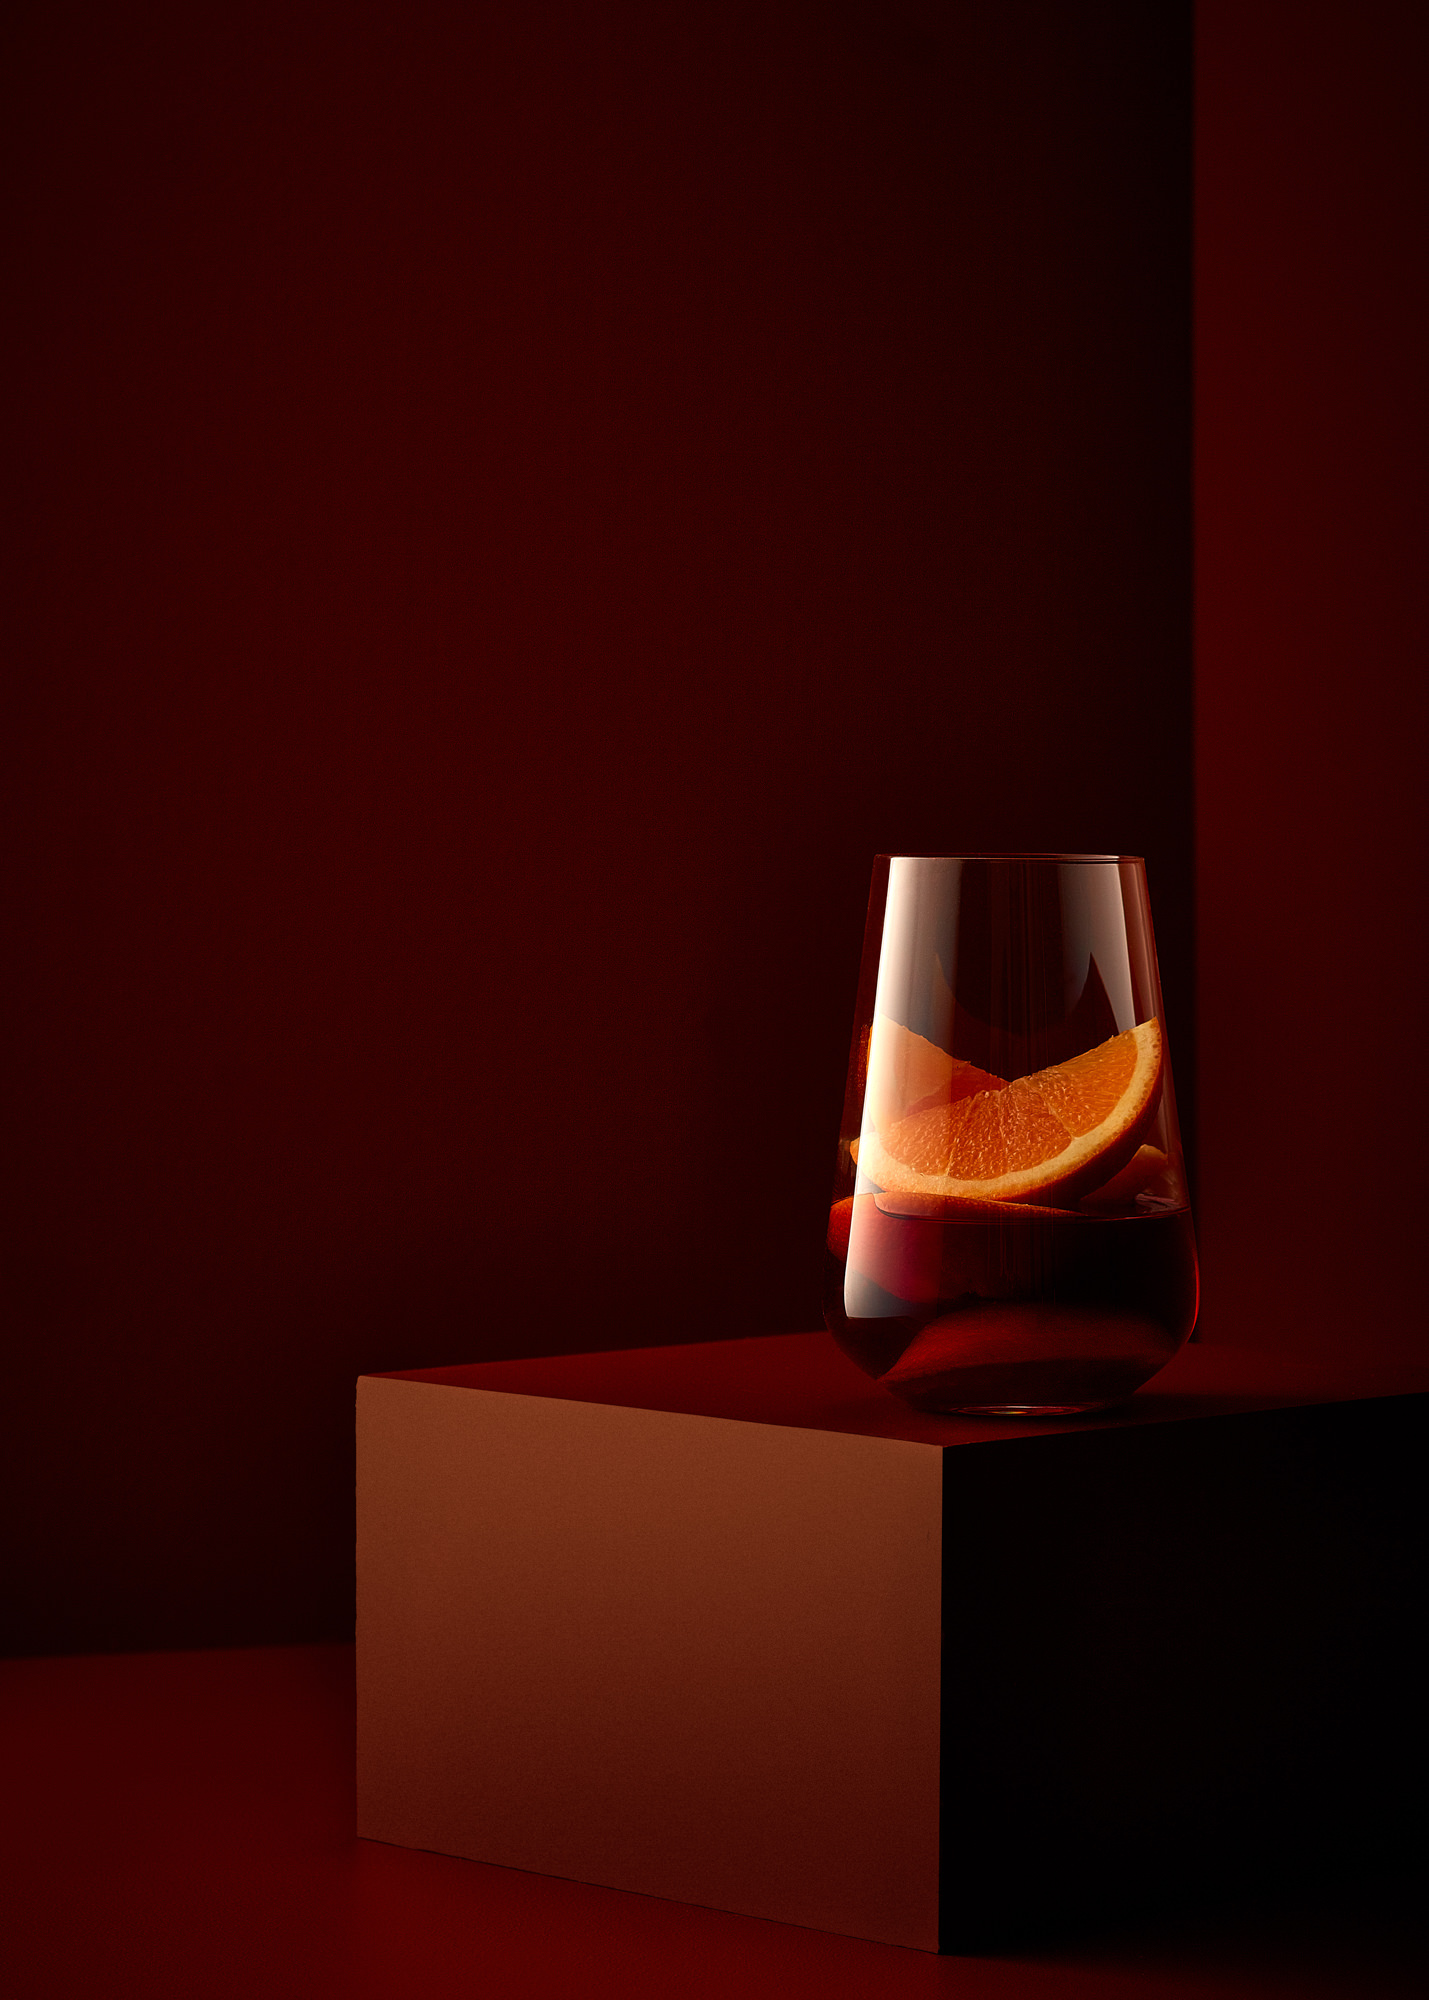 Classic whiskey cocktail on a rusty red set